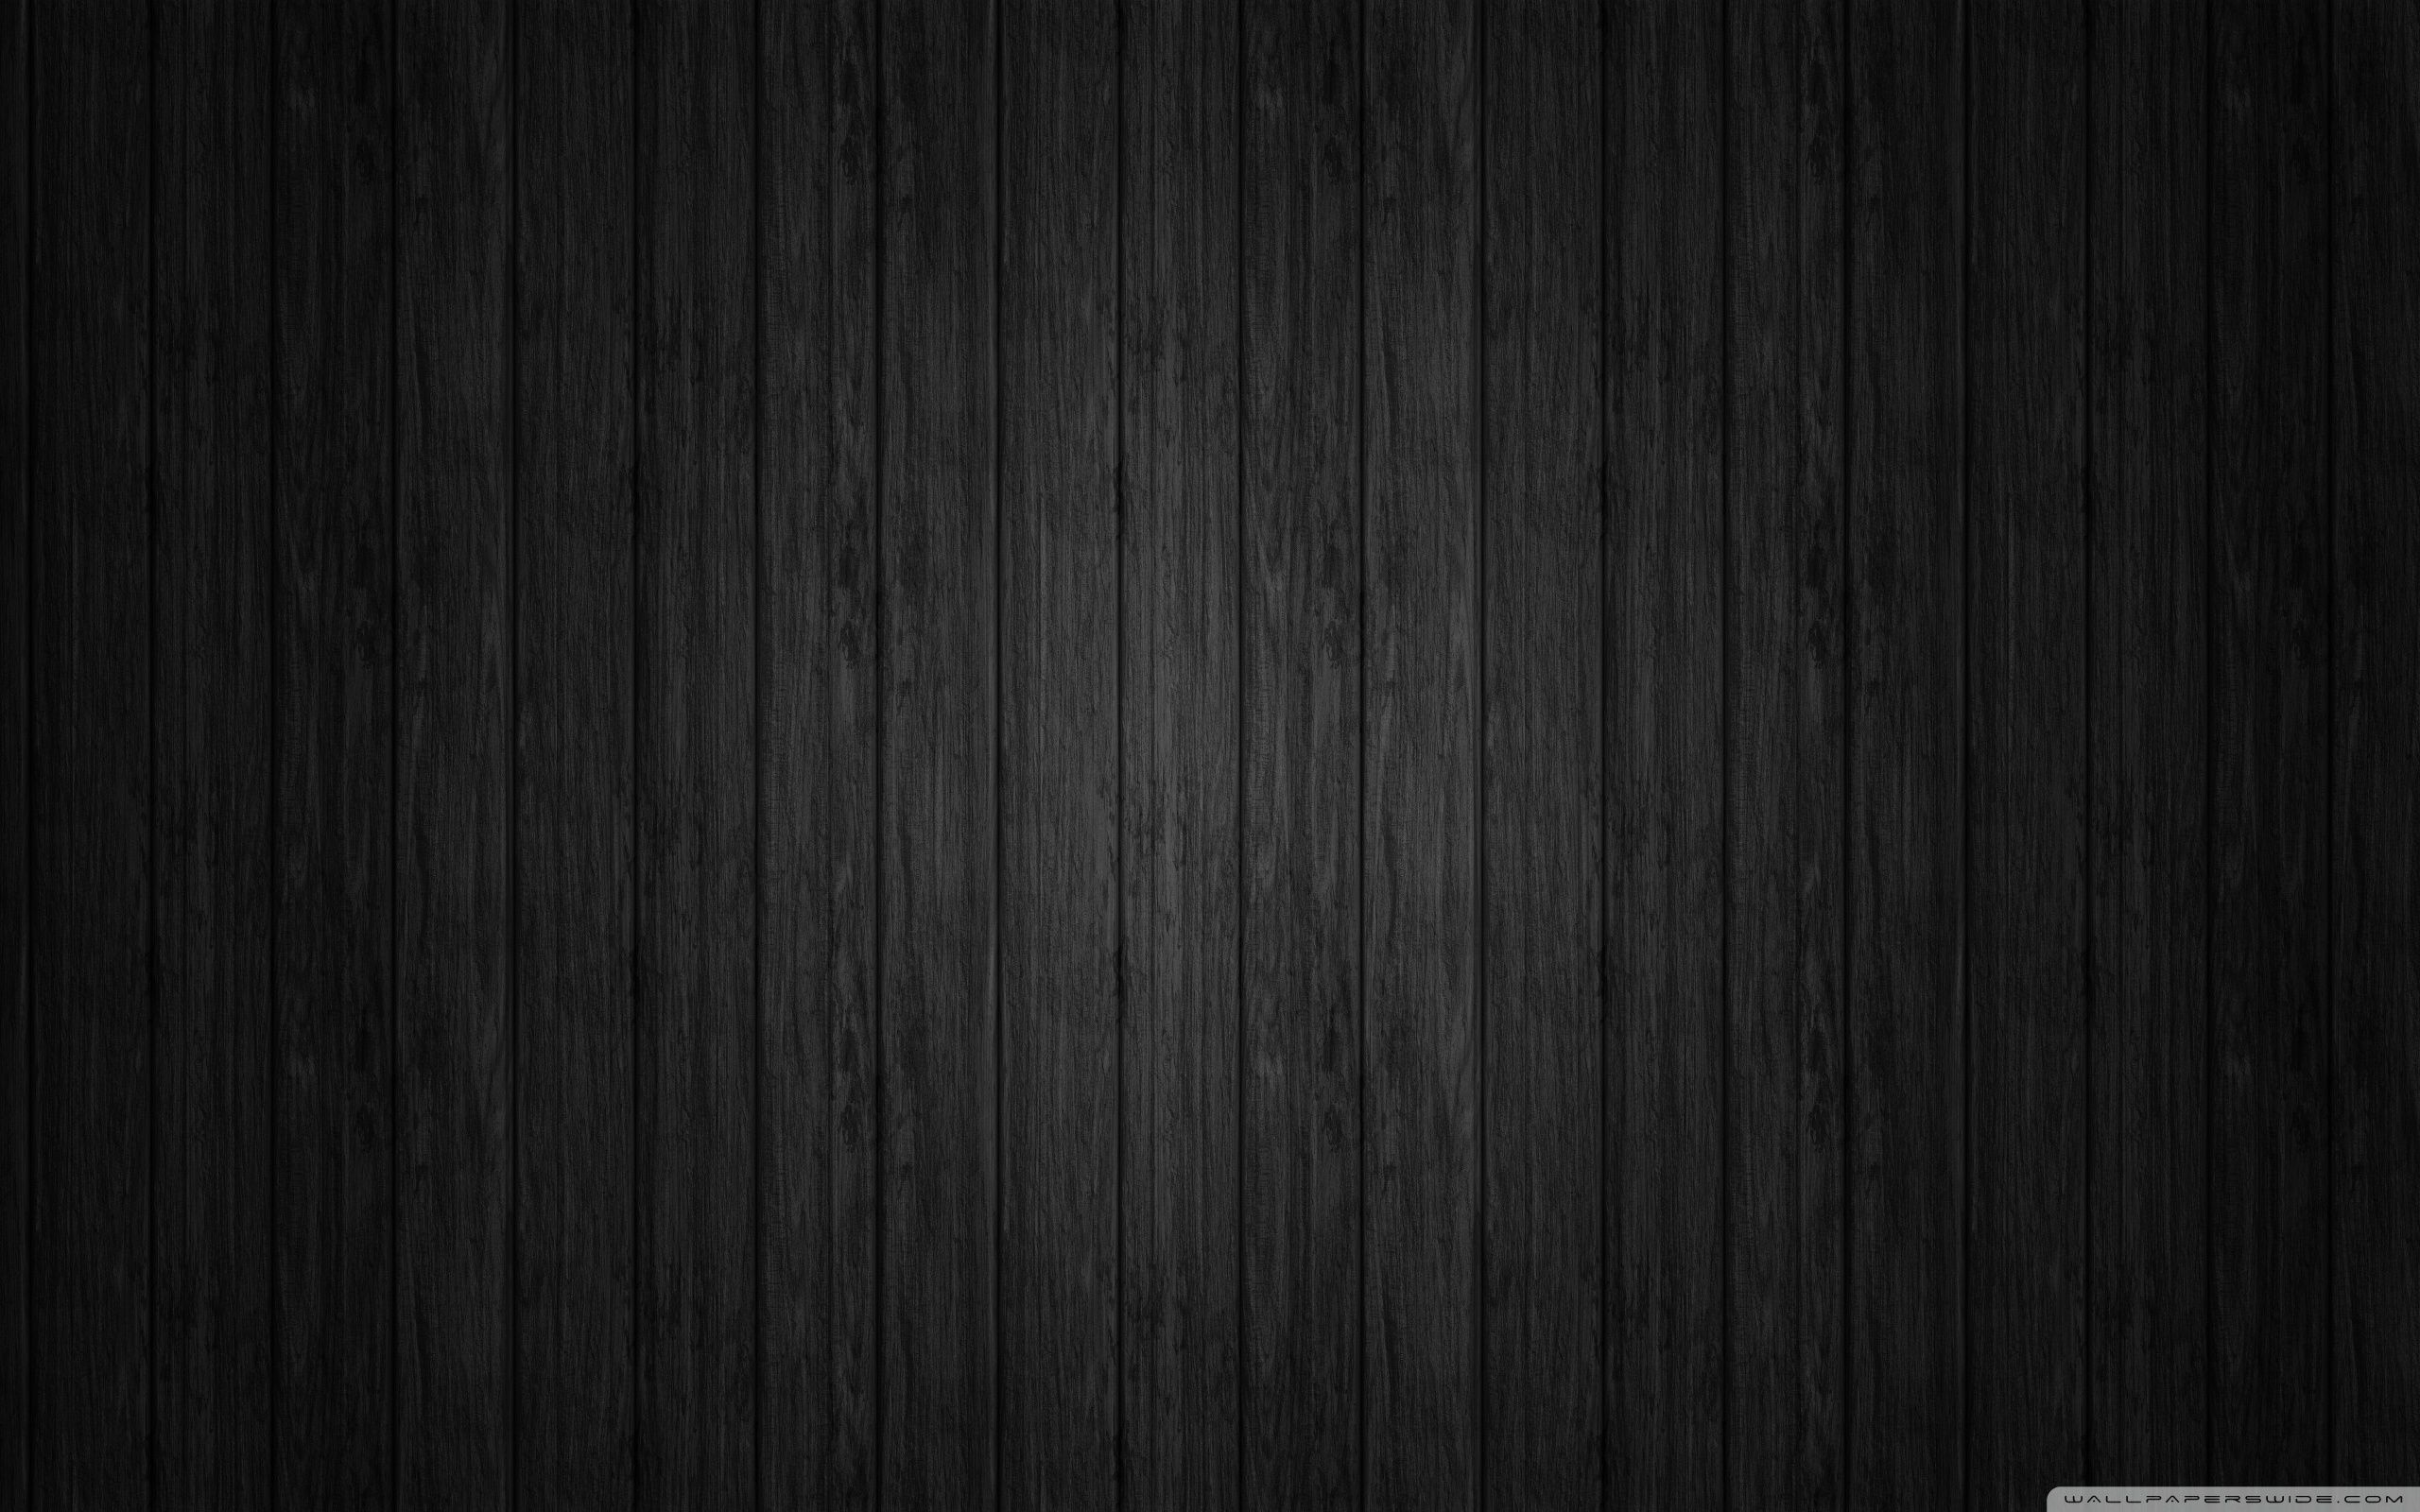 Black Background Iphone Wallpaper Black wood texture